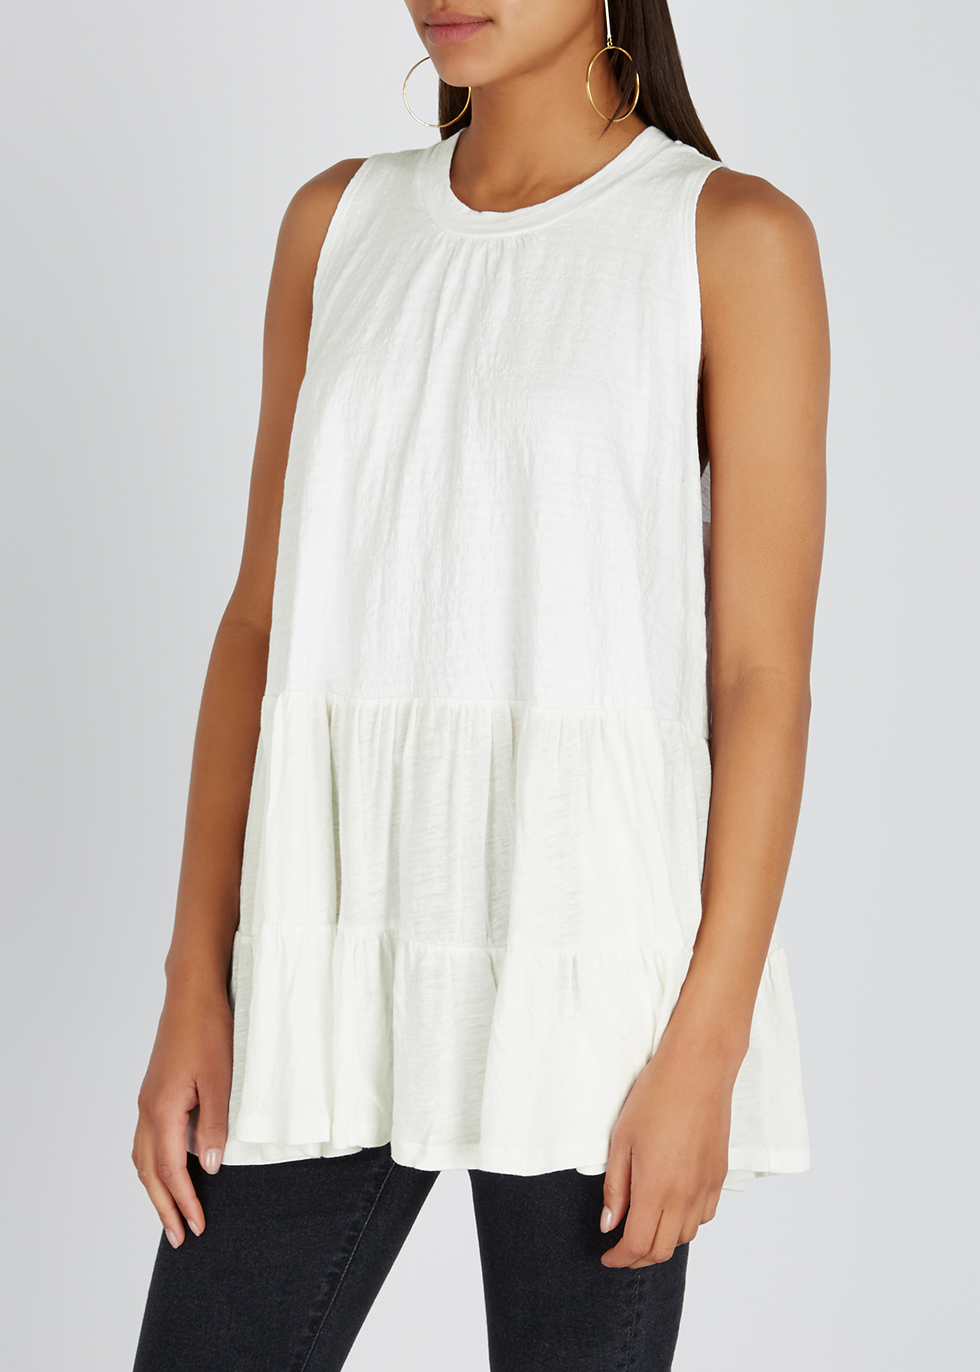 Right On Time cotton-blend top - Free People